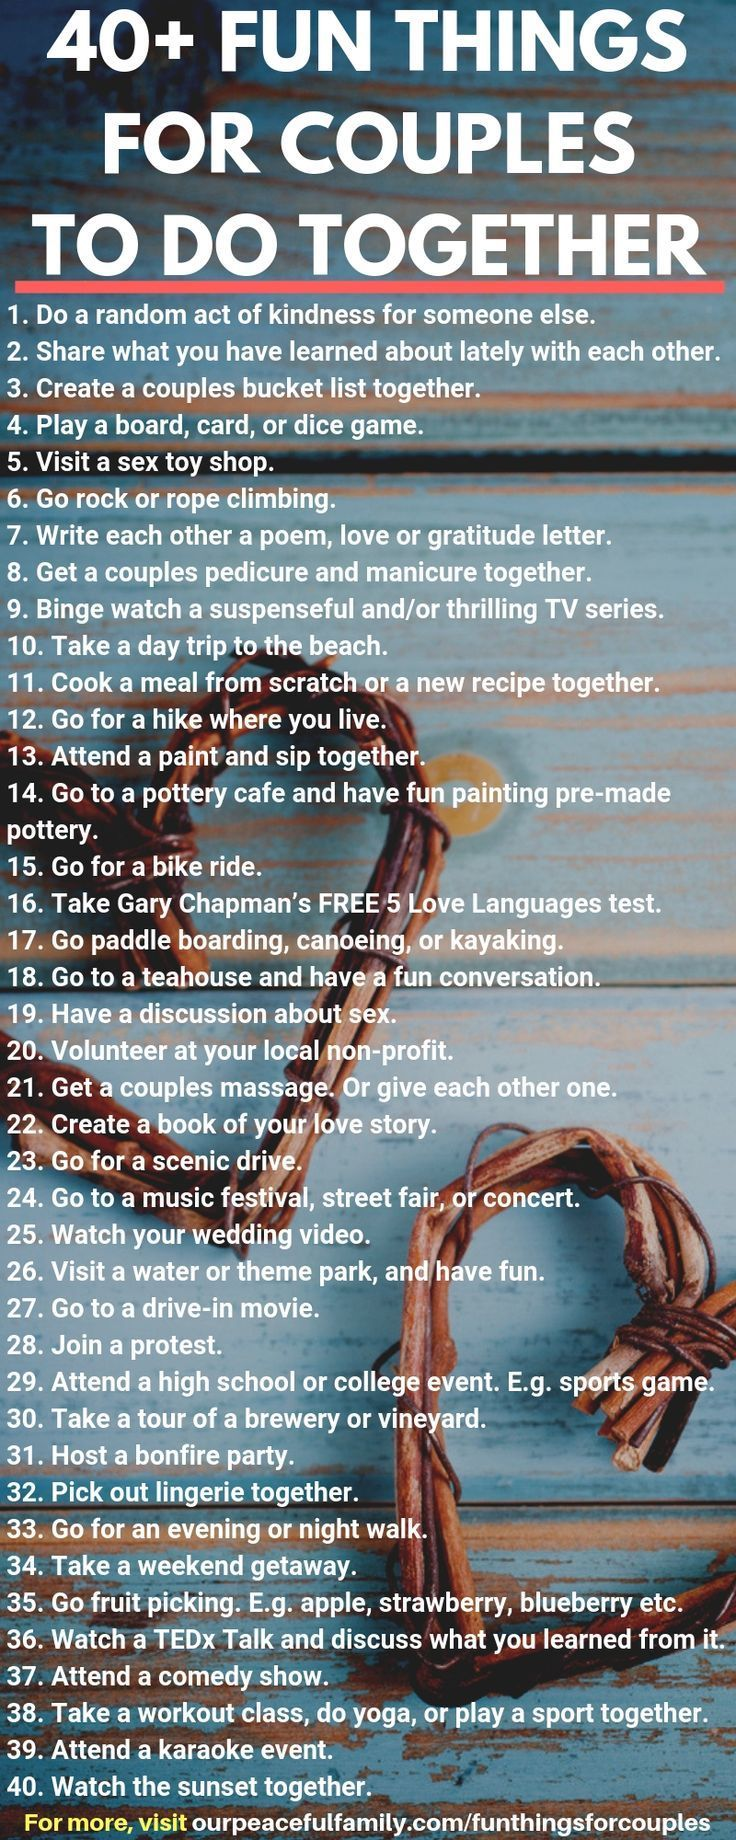 Photo of 101+ Fun Things for Couples to Do: Cute Date Ideas and Activities for Bonding To…